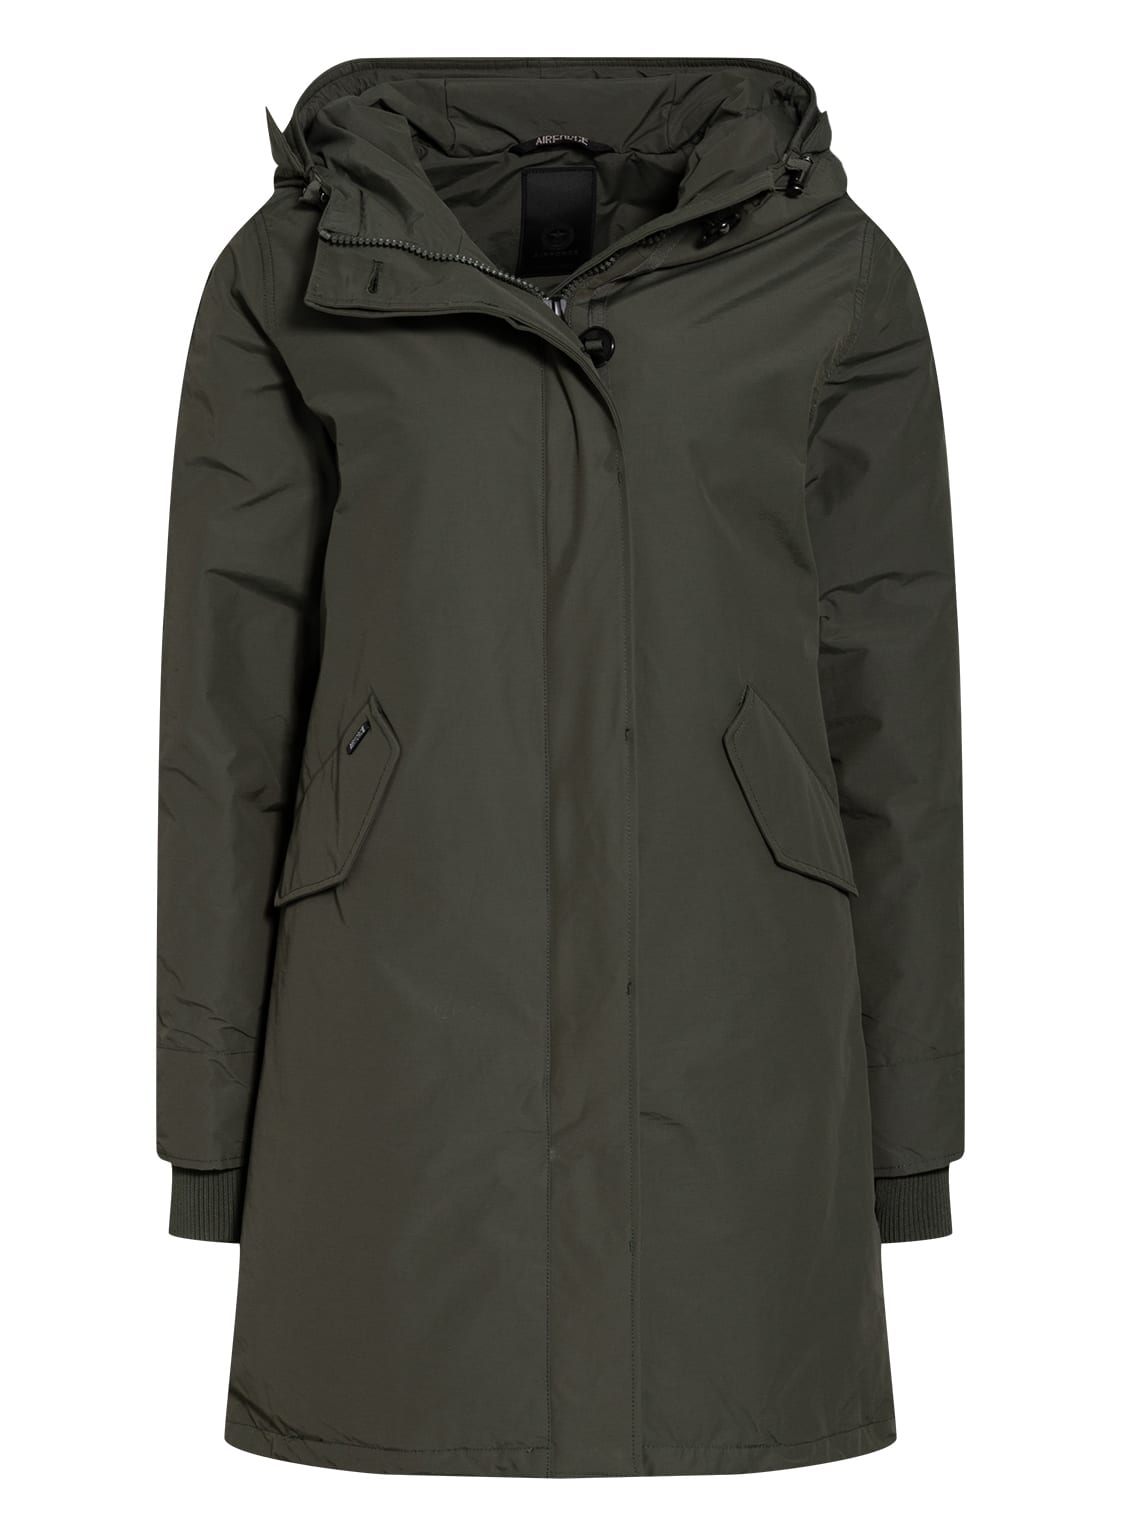 Image of Airforce Parka Fishtail gruen